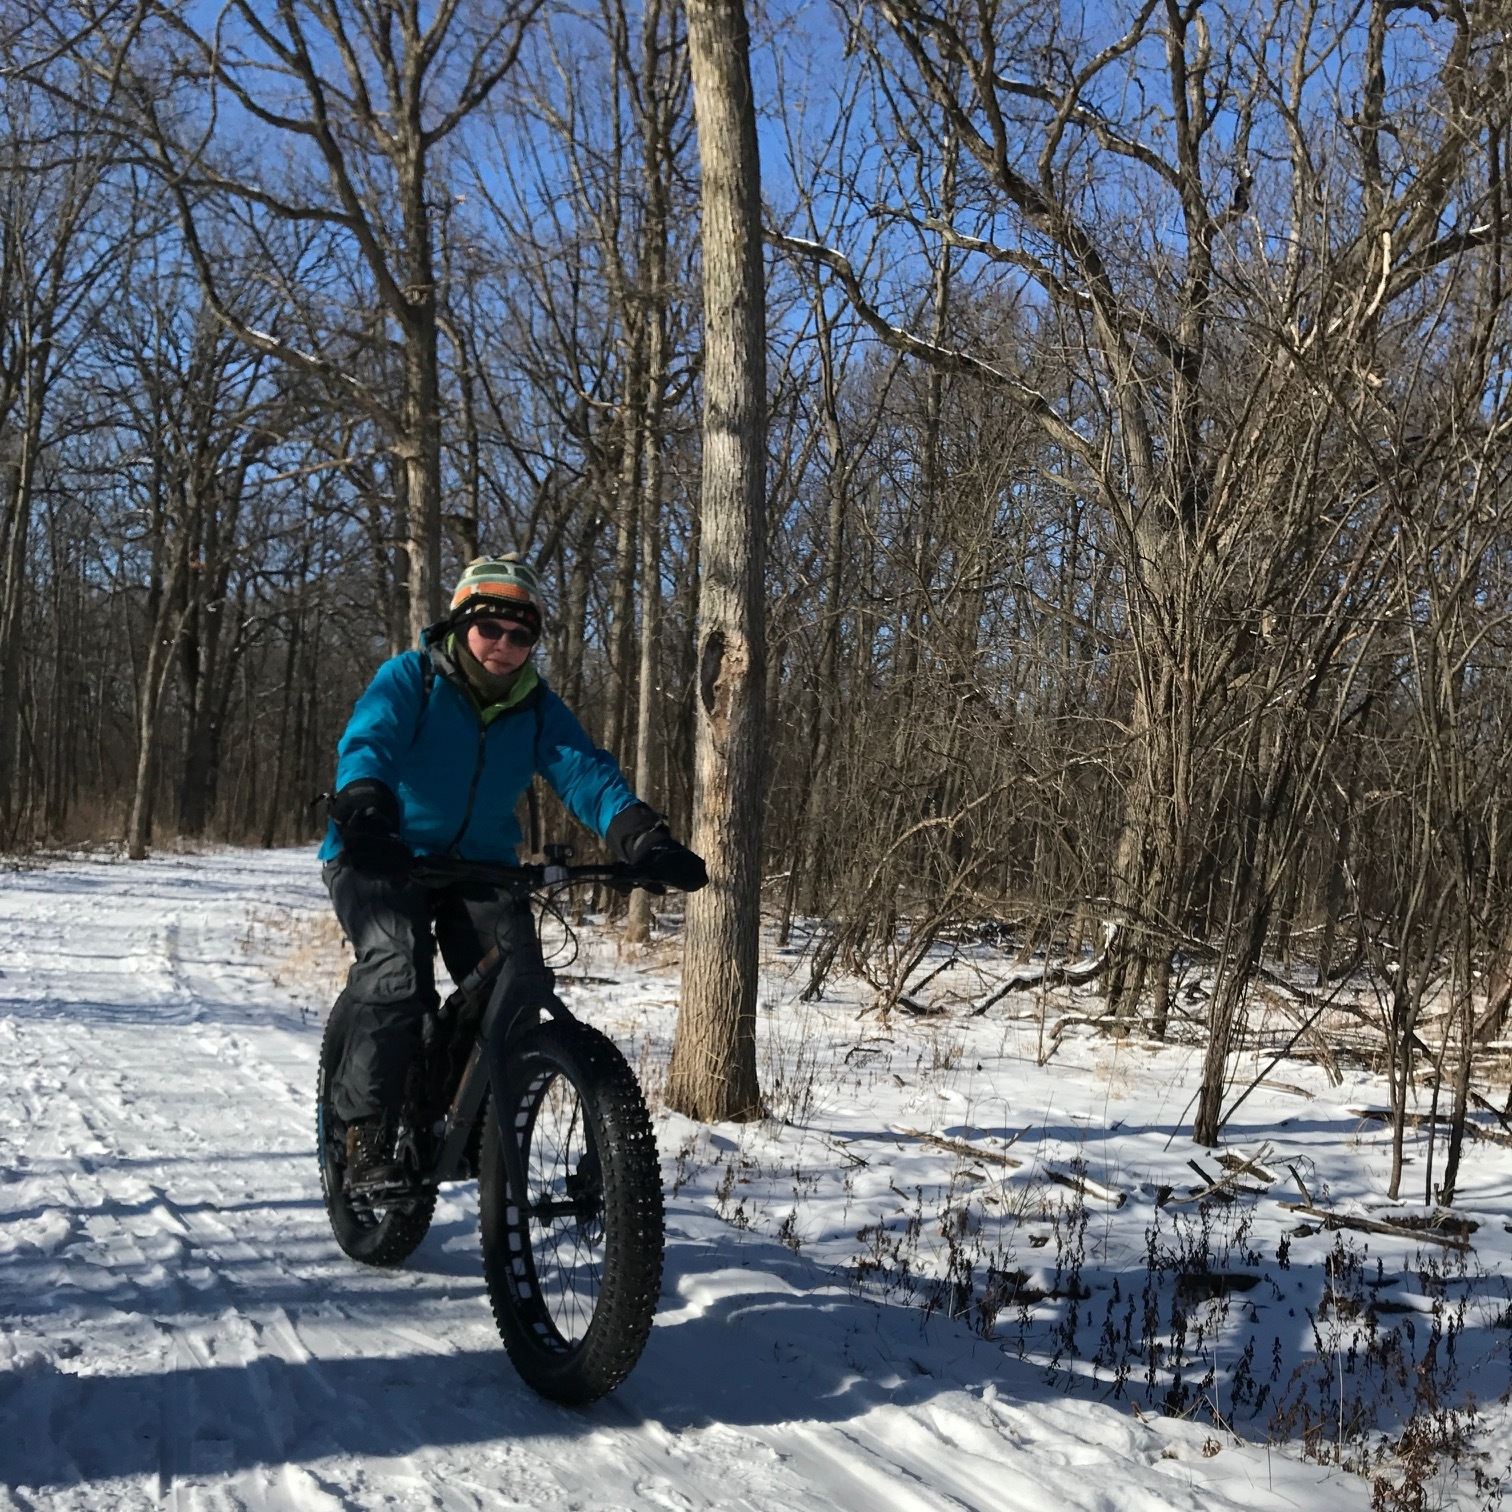 Des Plaines River Trail at Beck Lake, January 1, 2018